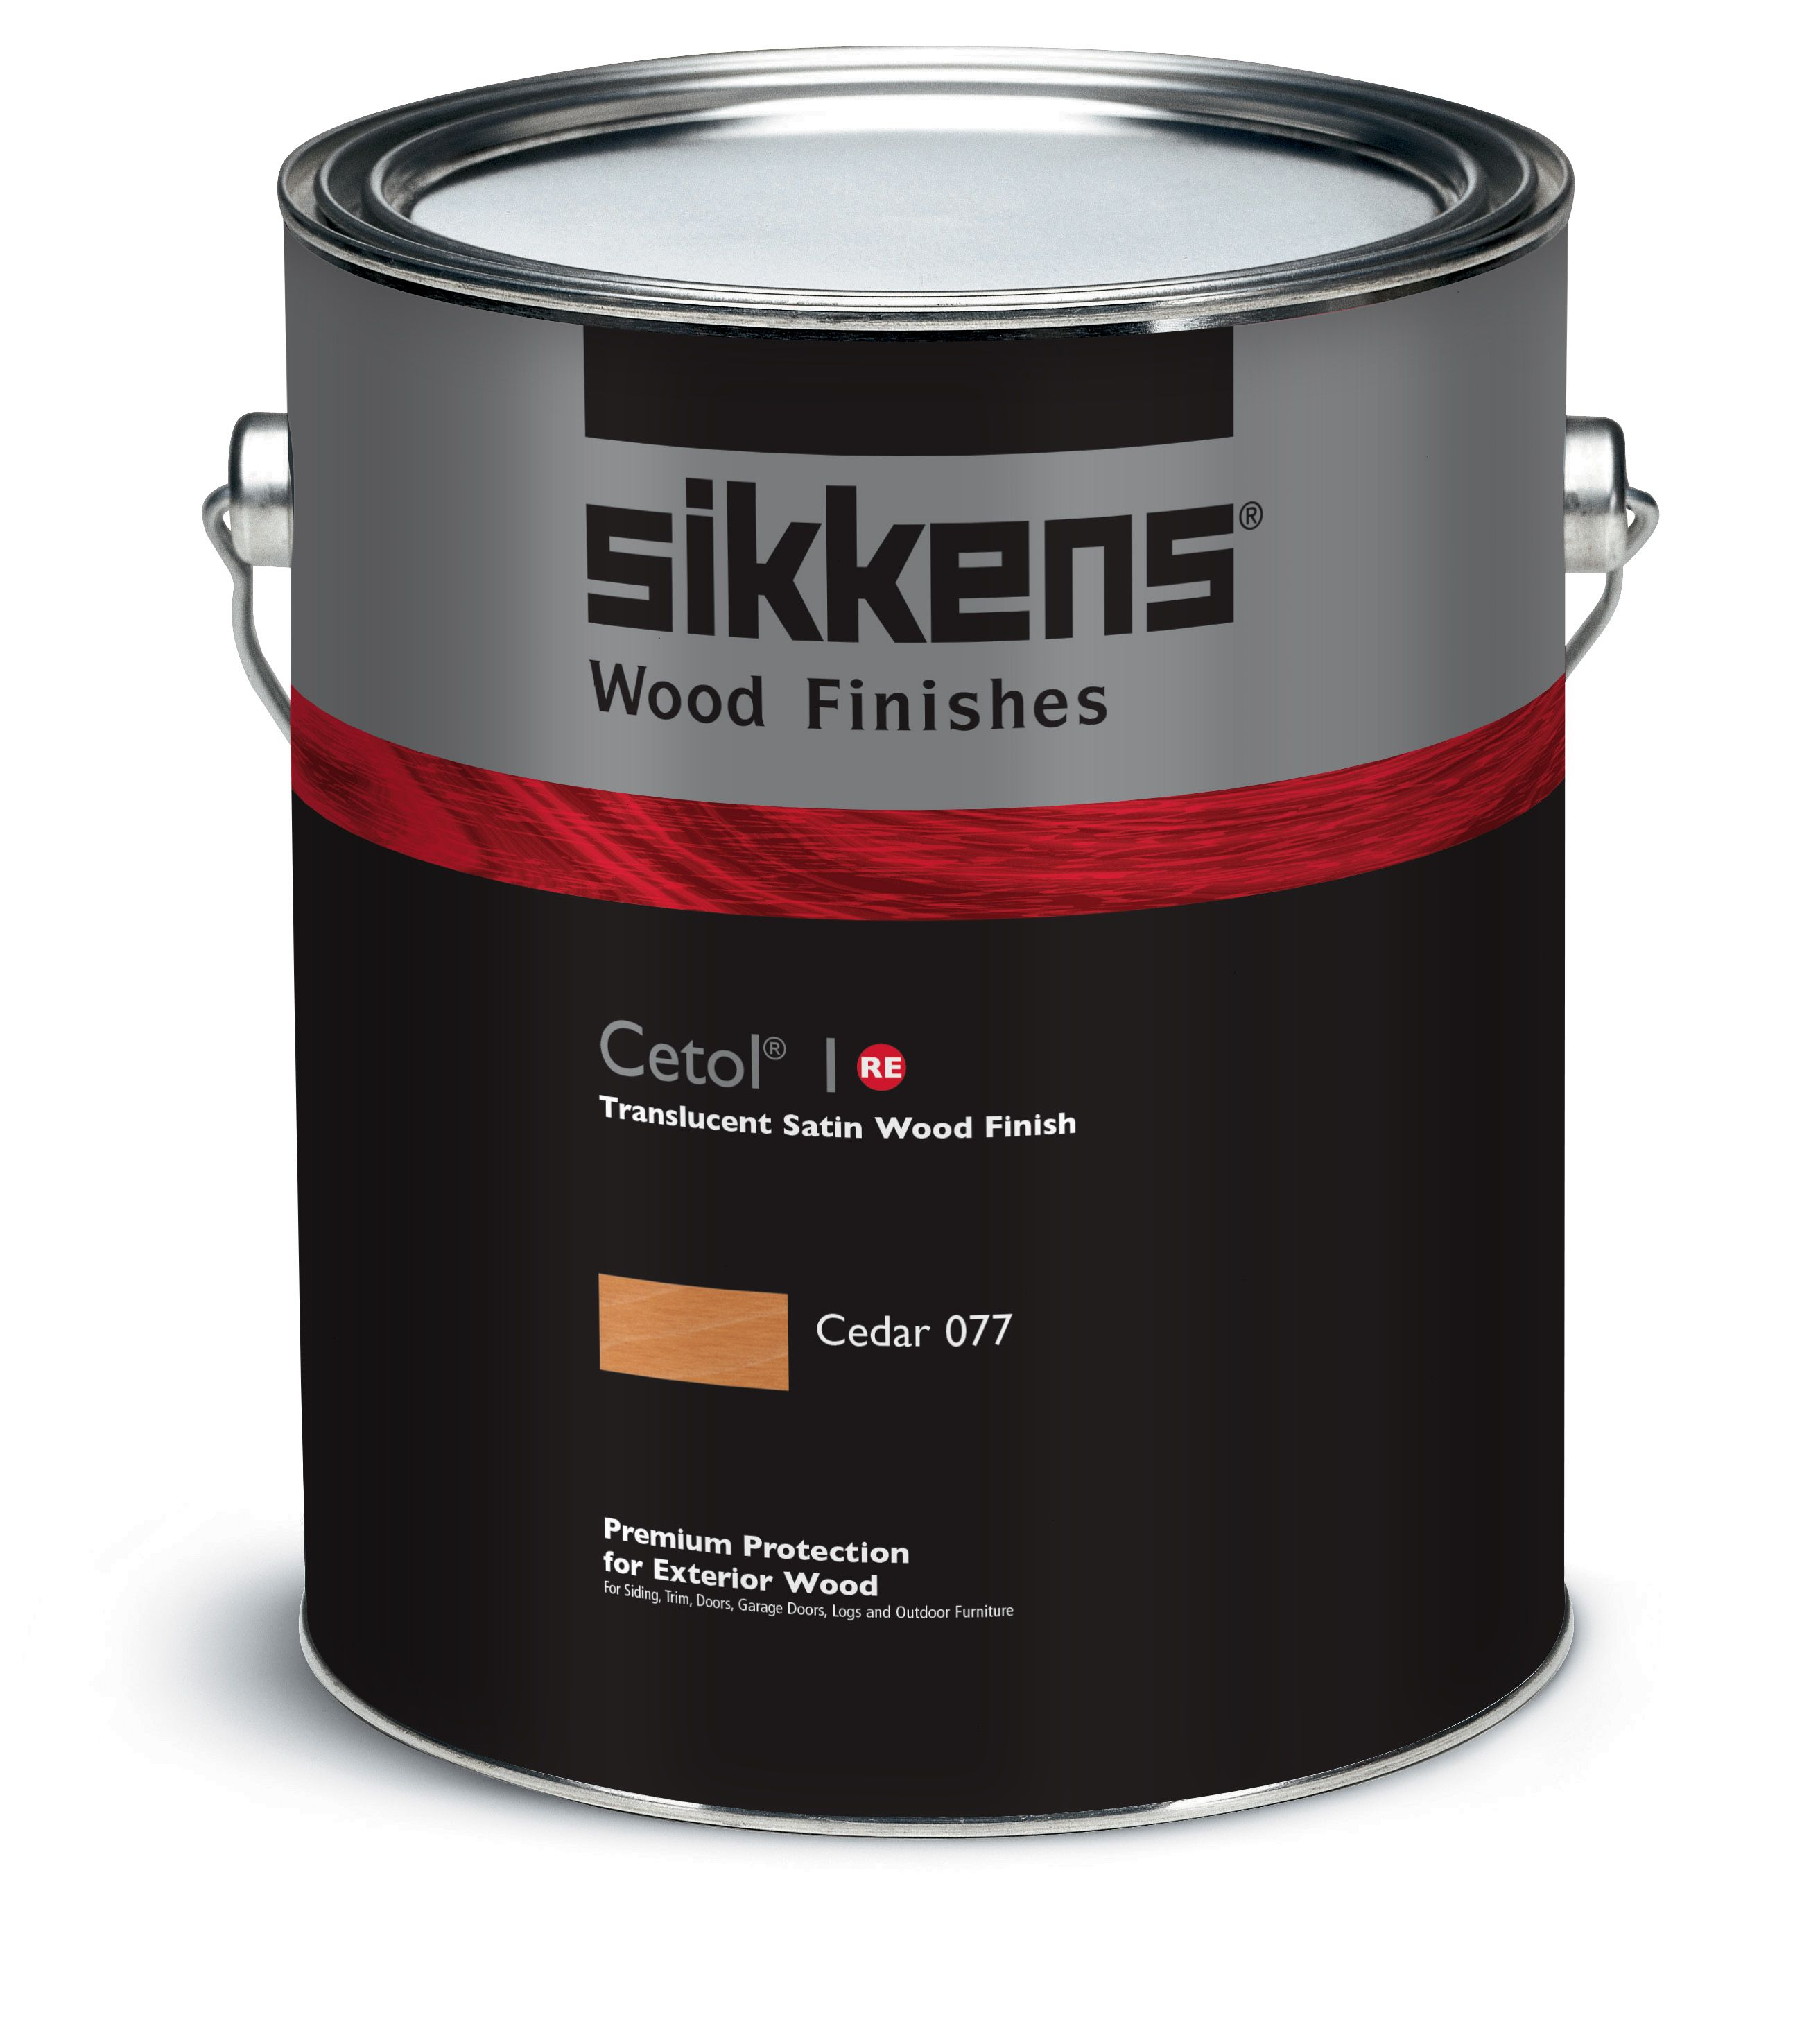 Cetol 1 Re Exteriors Sikkens Translucent Satin Basecoat To Be Used With Cetol 23 Plus Re Use On Siding T Log Homes Log Home Decorating Exterior Stain